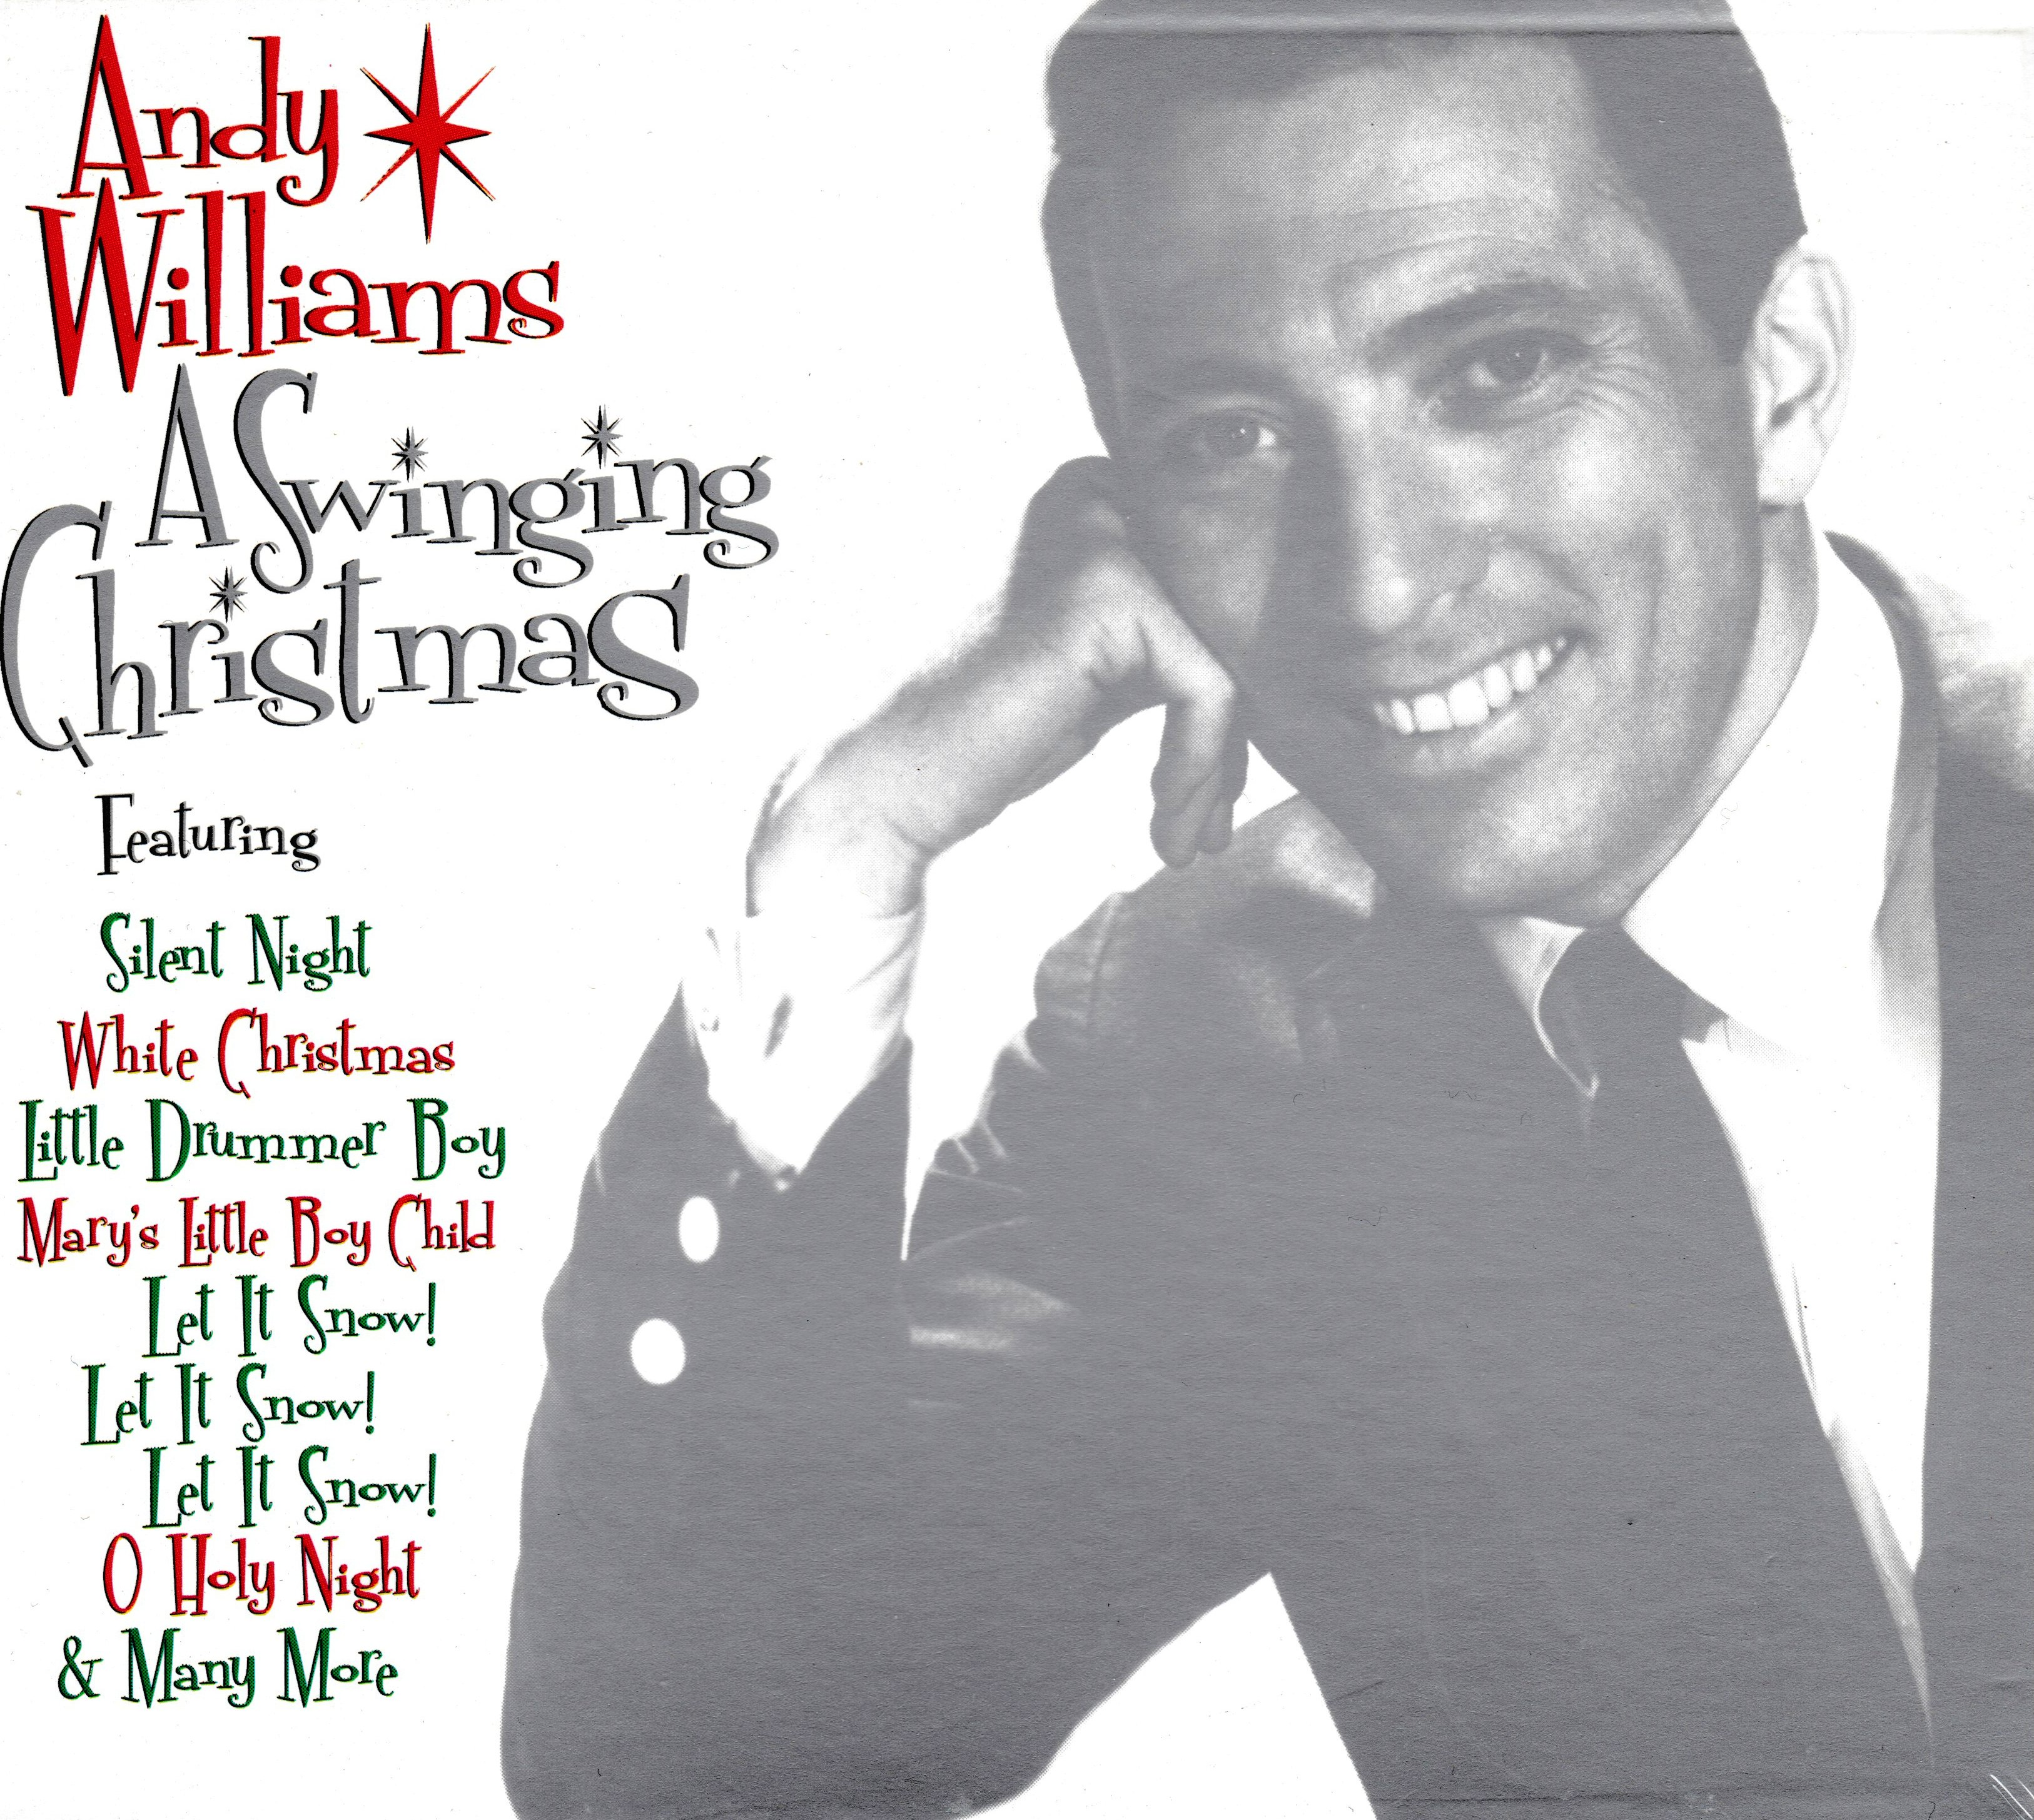 ANDY WILLIAMS - A Swinging Chr